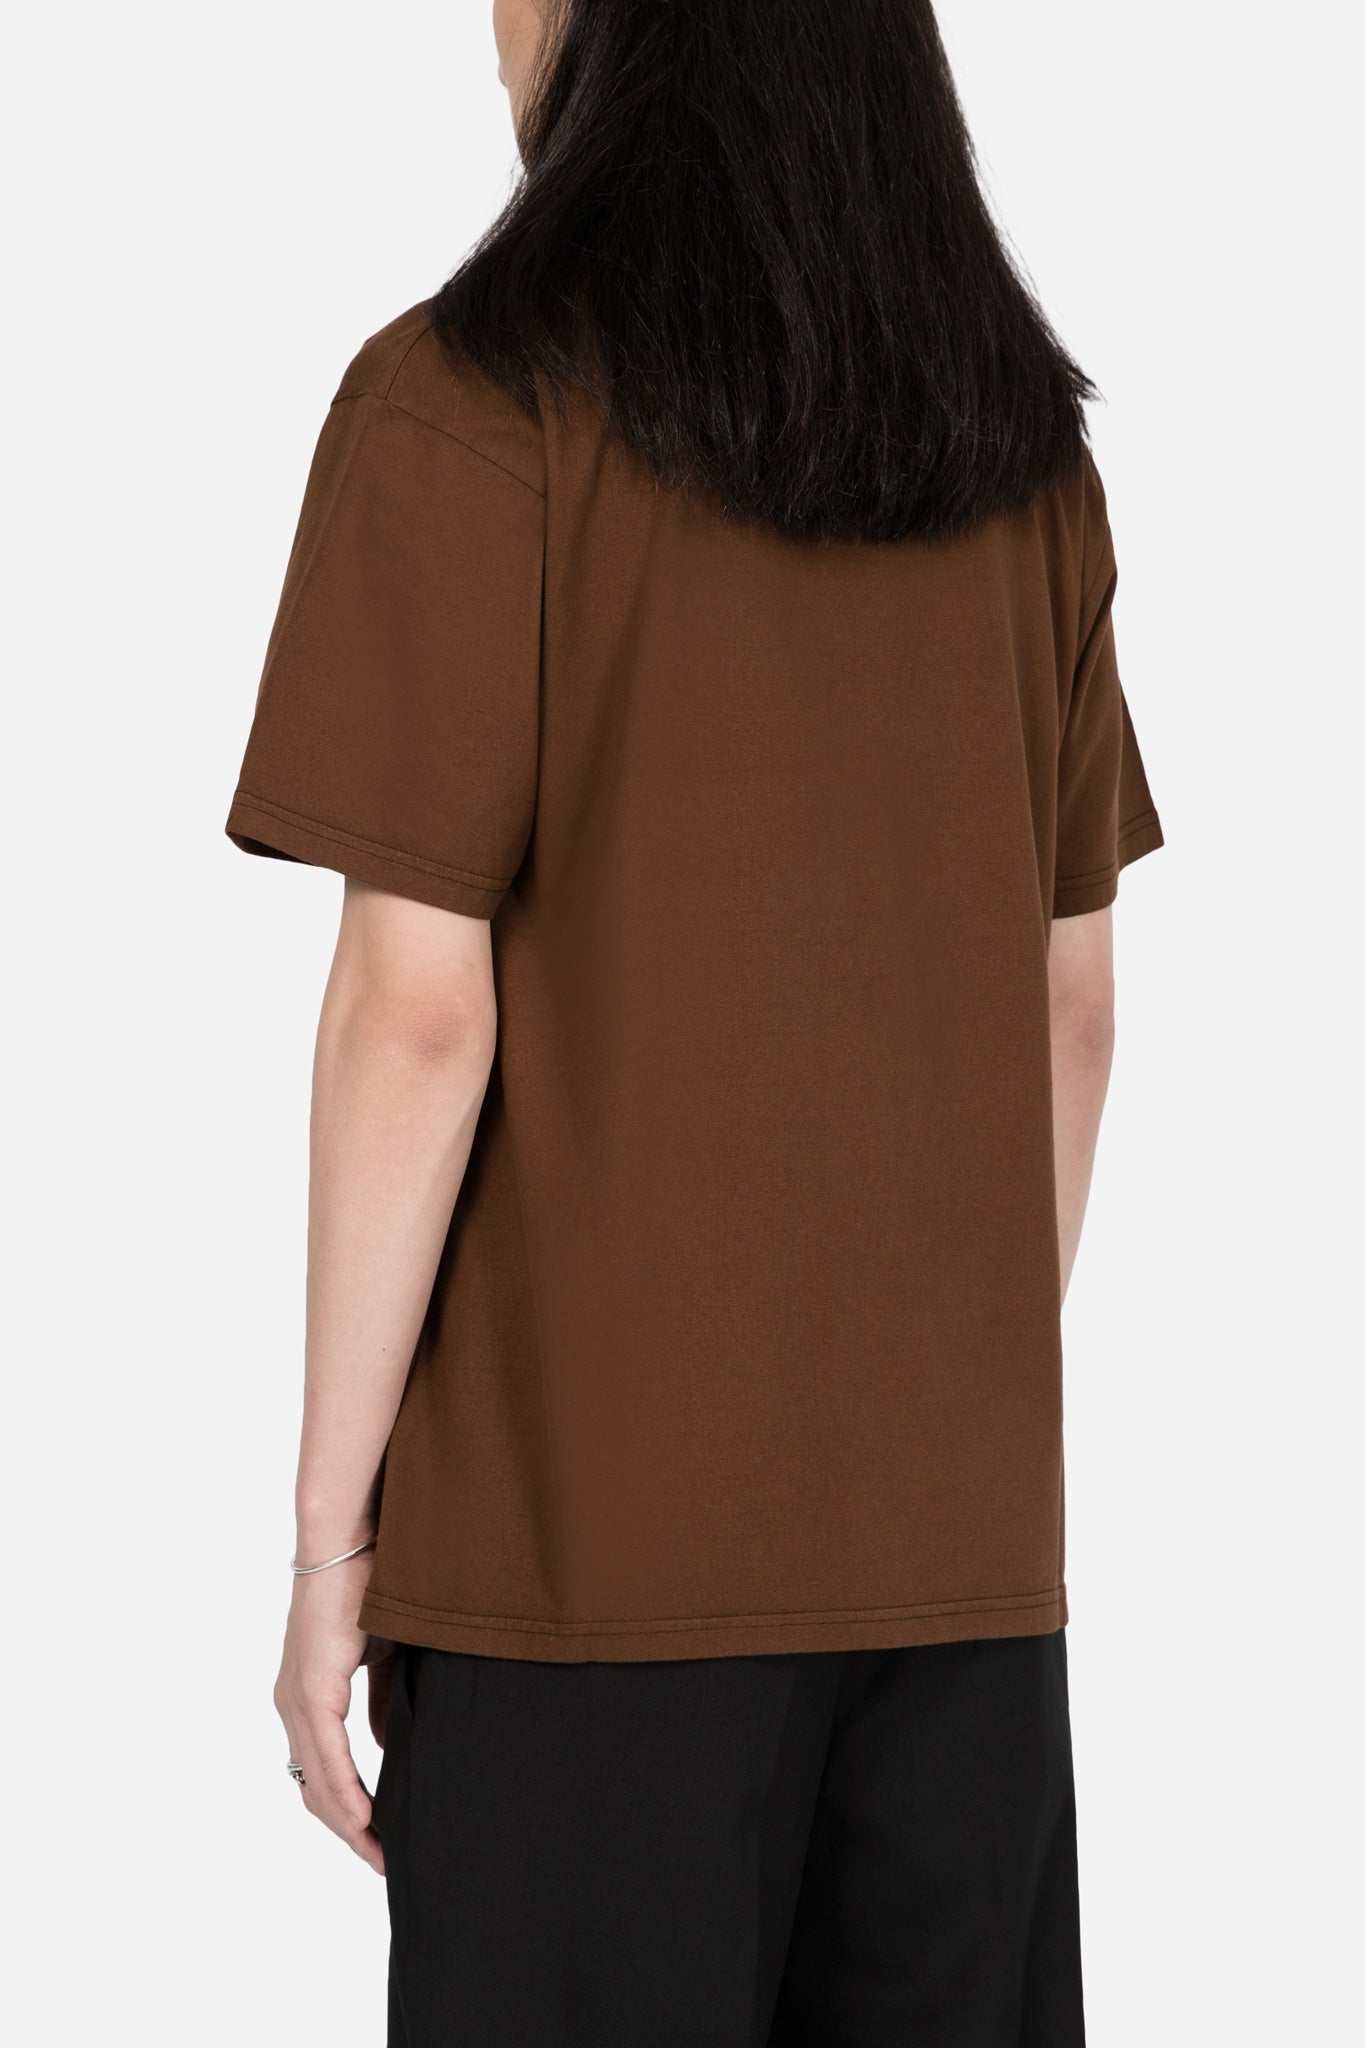 STYLE 1 OPT 1 T-shirt Brown